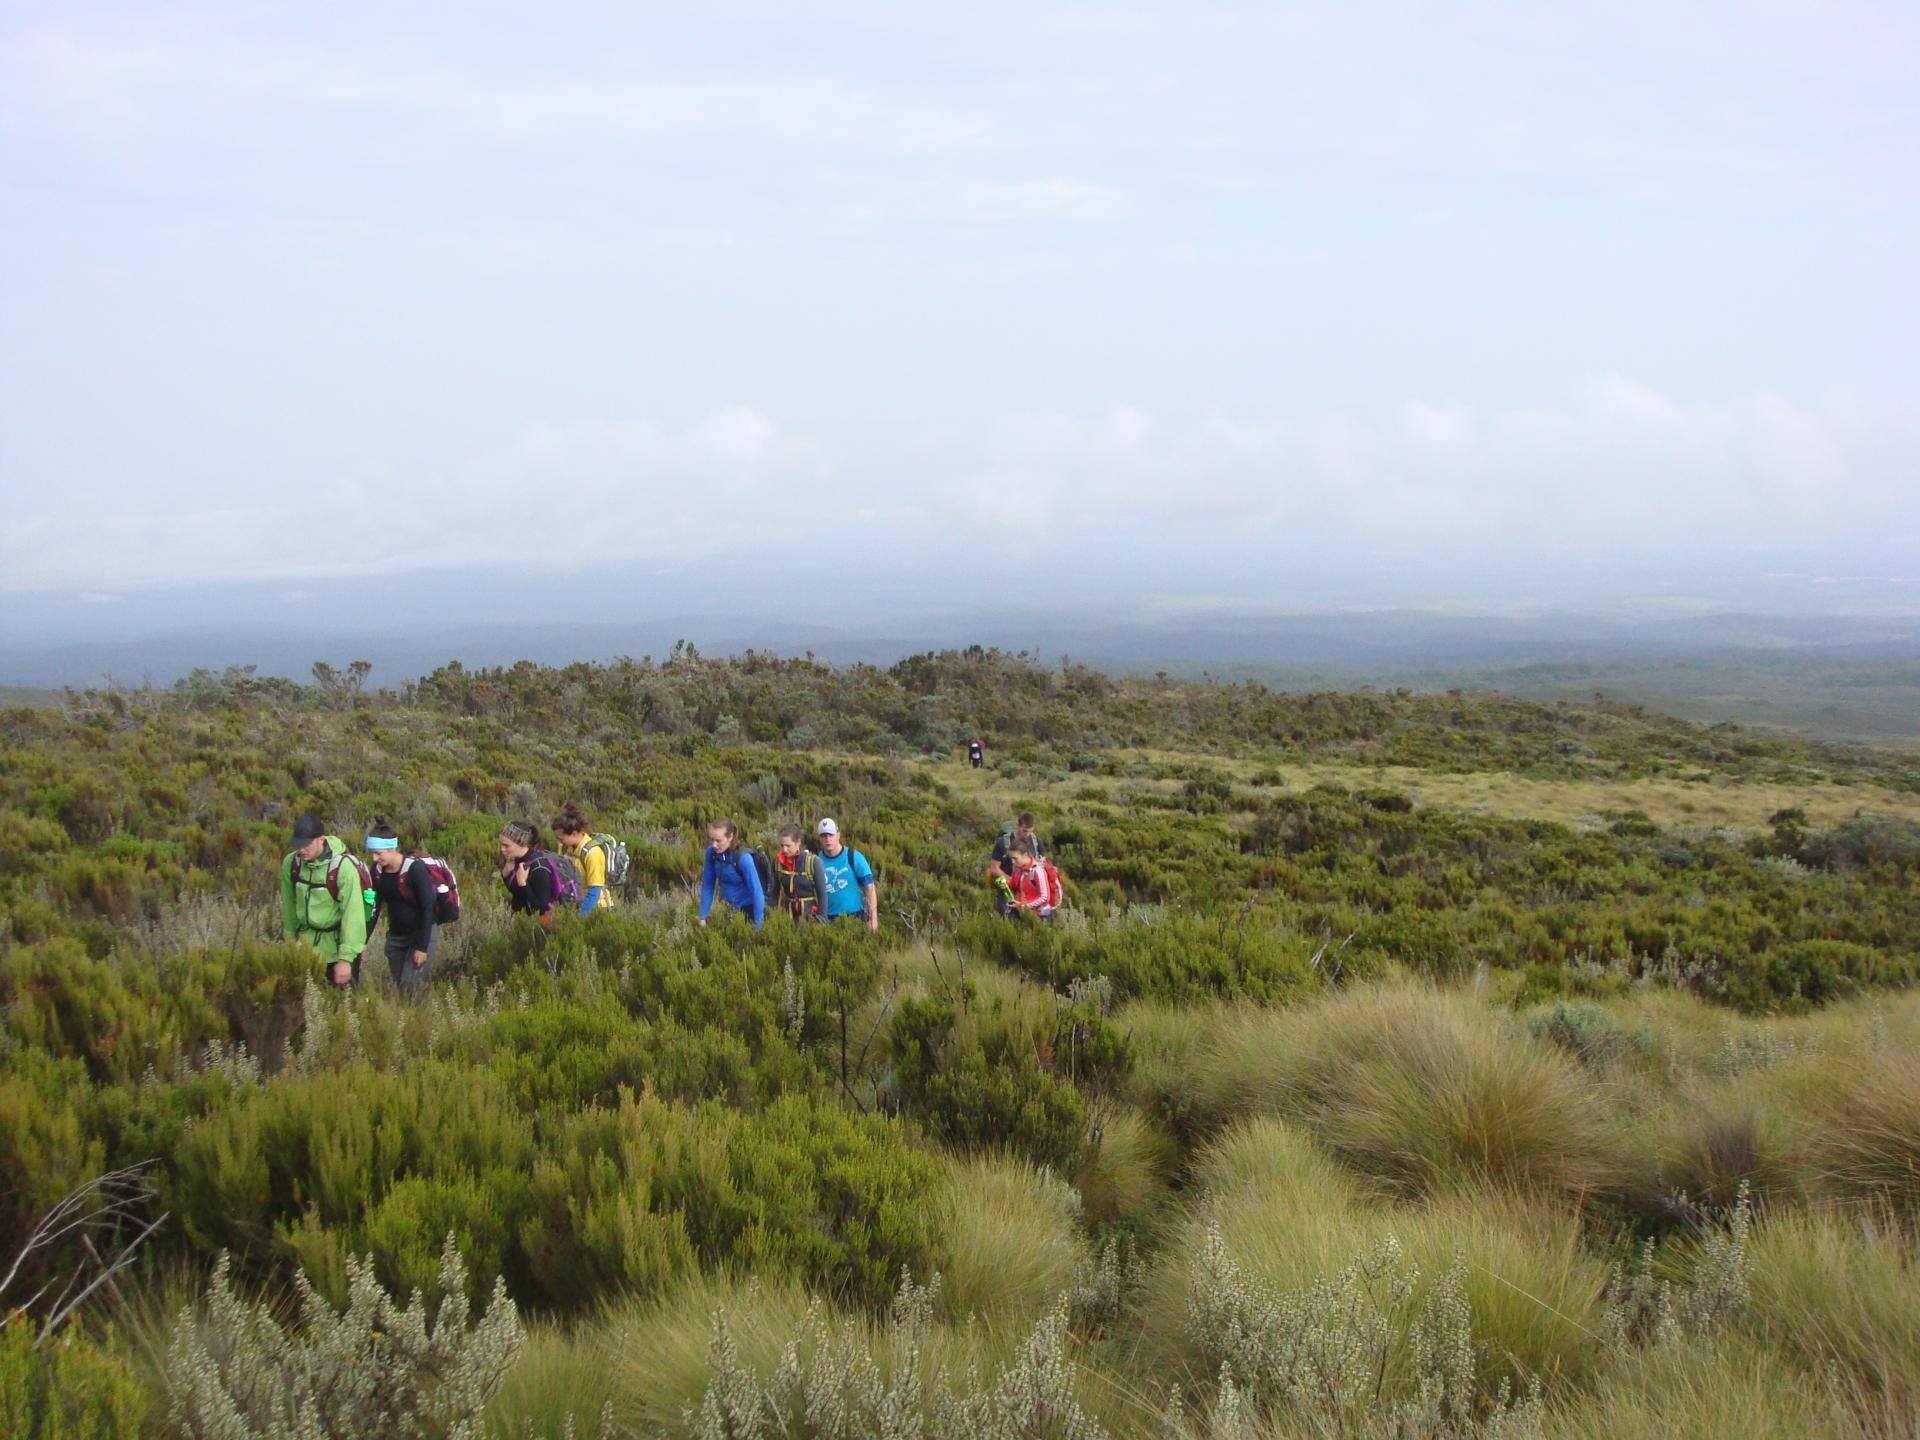 Group Trekking Mount kenya Routes